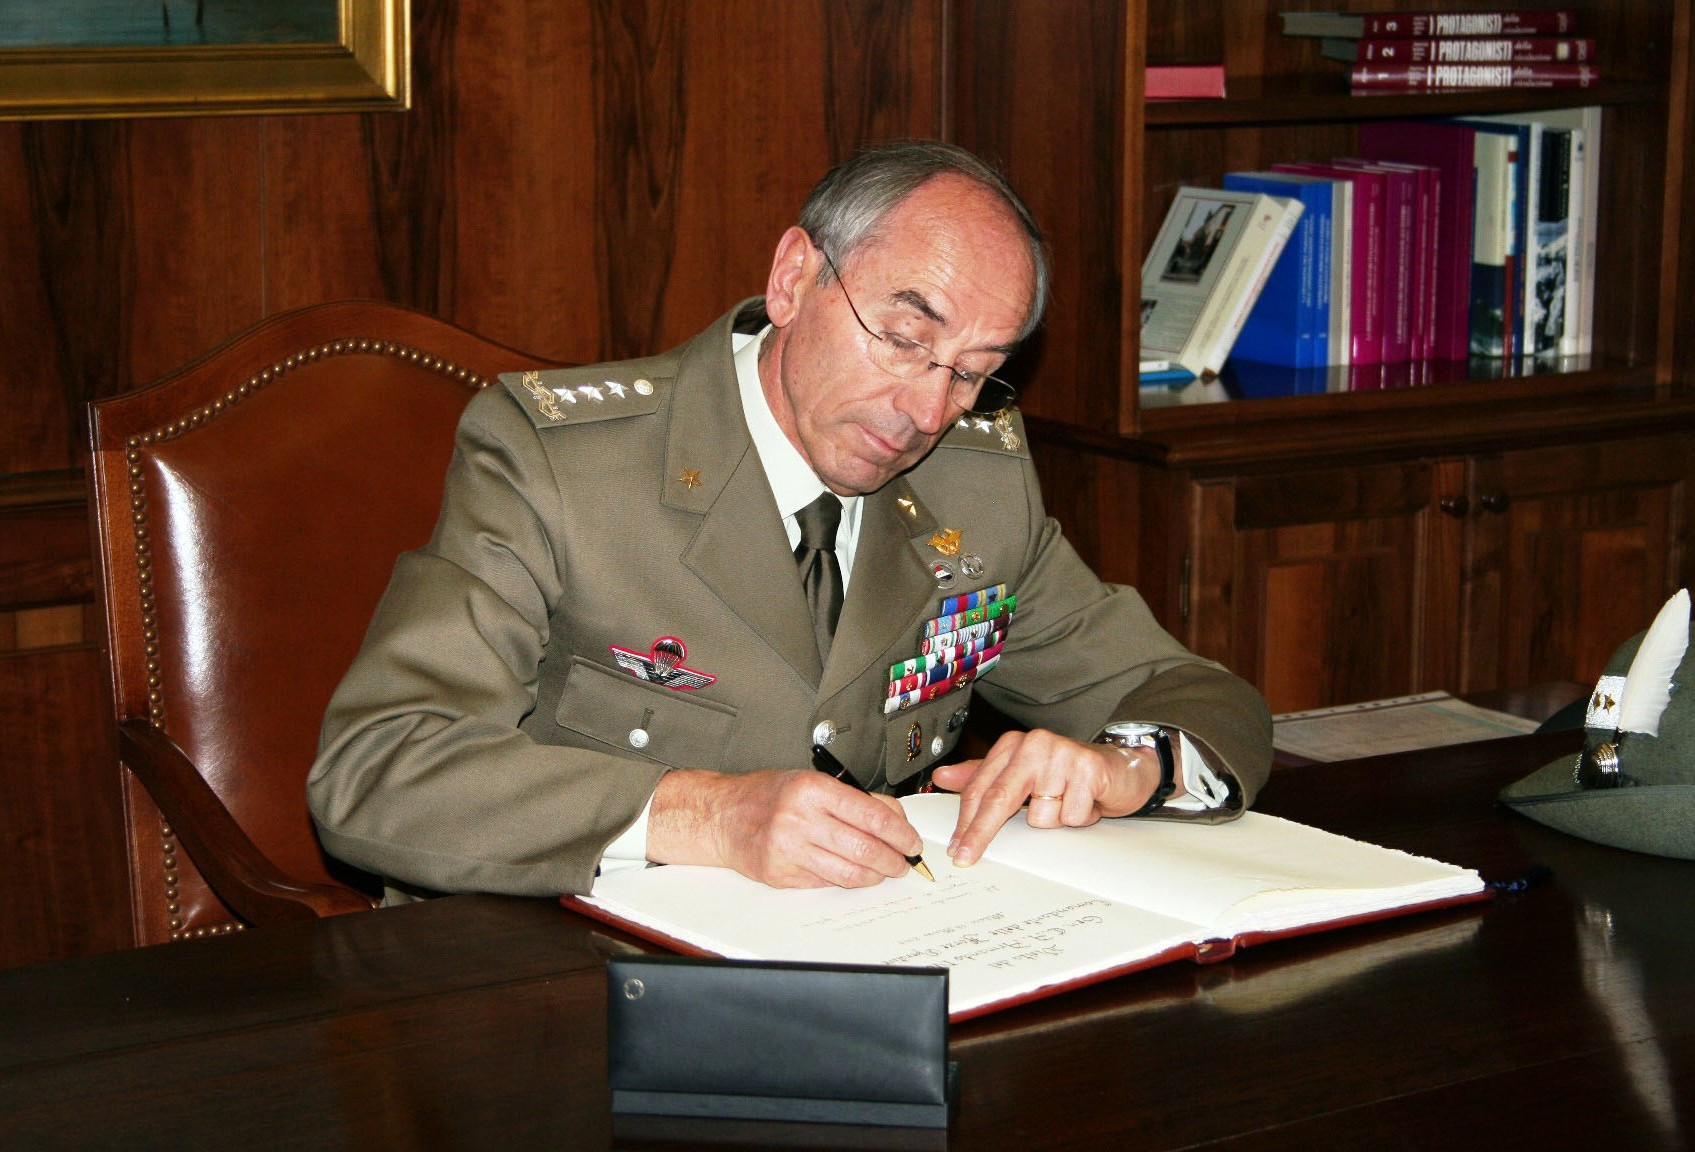 THE COMMANDER OF THE ITA OPERATIONAL LAND FORCES VISITS NRDC-ITA